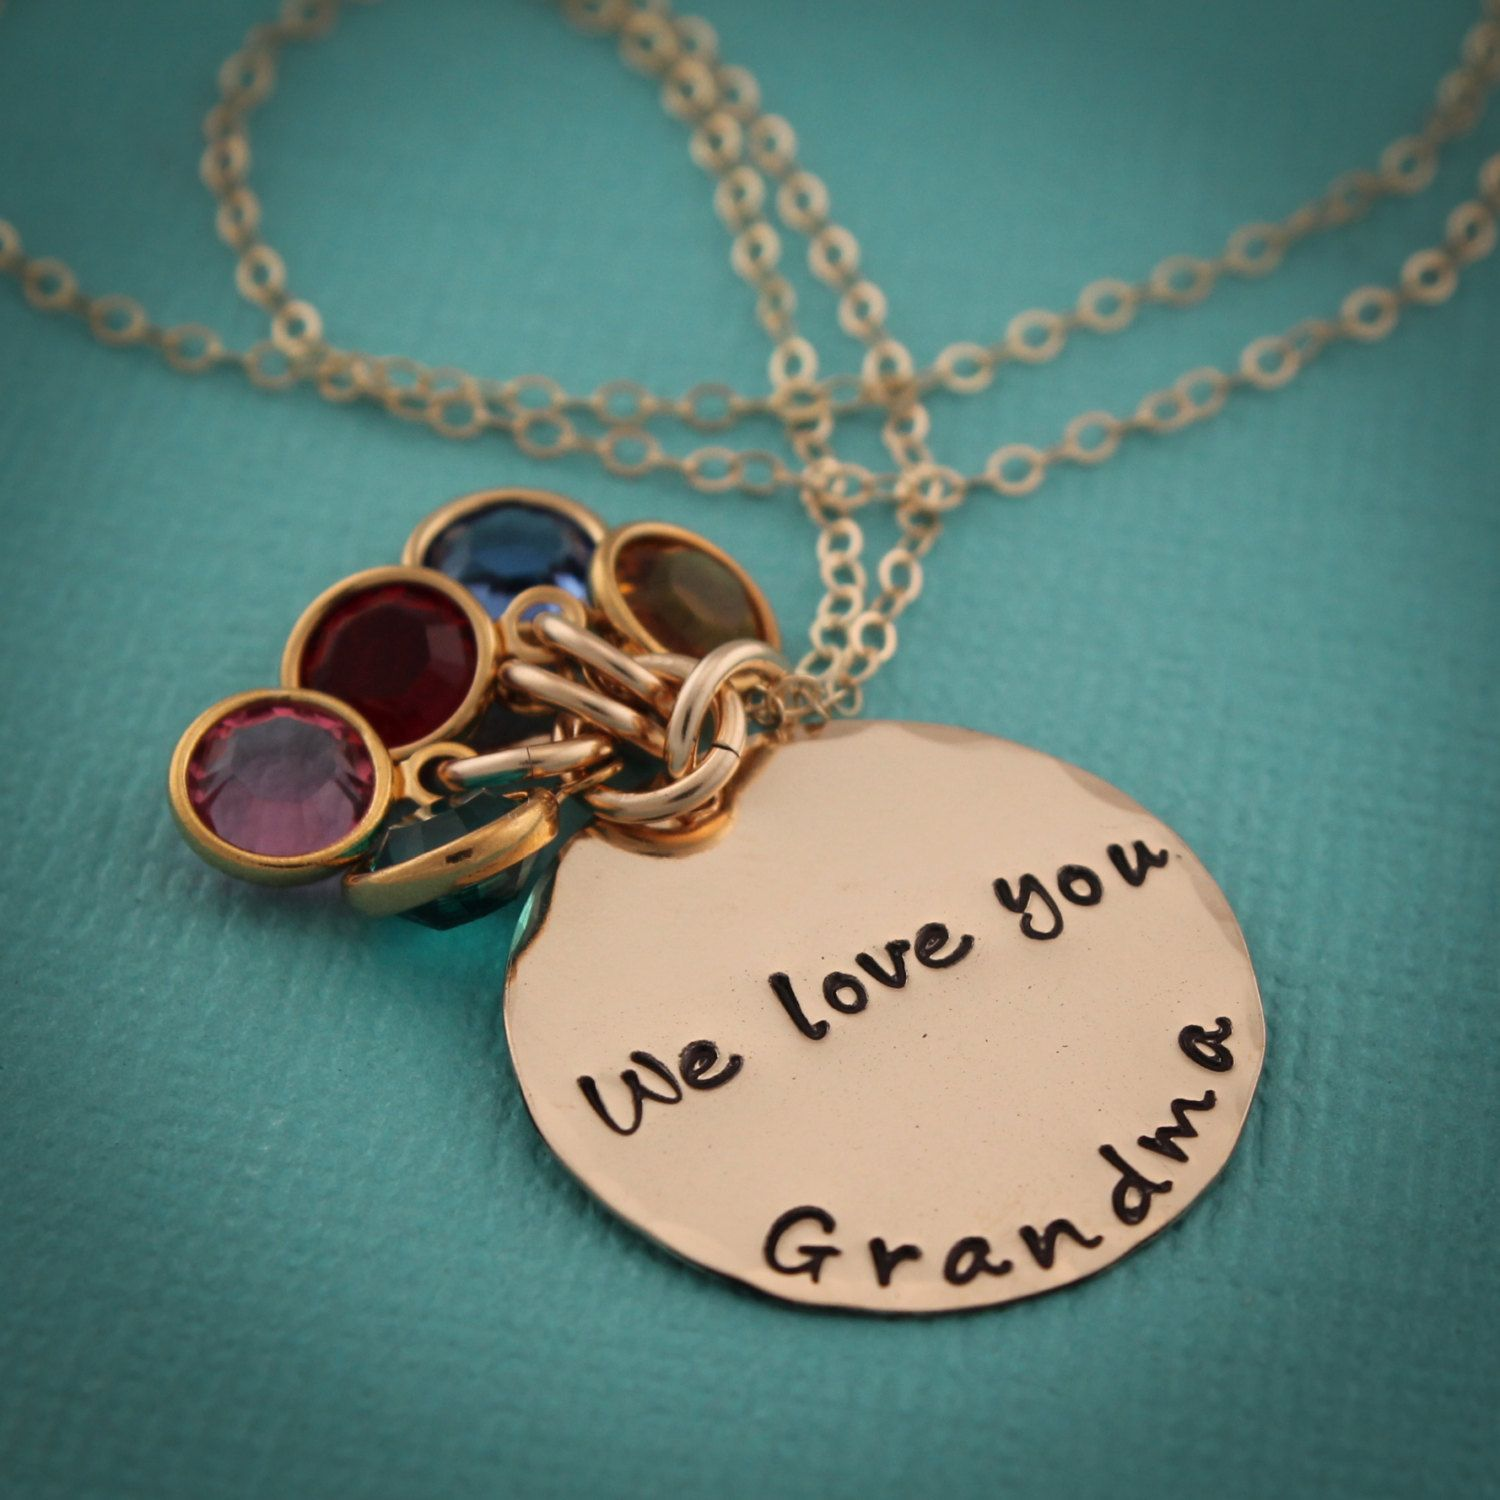 Gold Grandma Necklace With Birthstones Grandmother Necklace In Etsy Grandmother Necklace Grandma Necklace Hand Stamped Jewelry